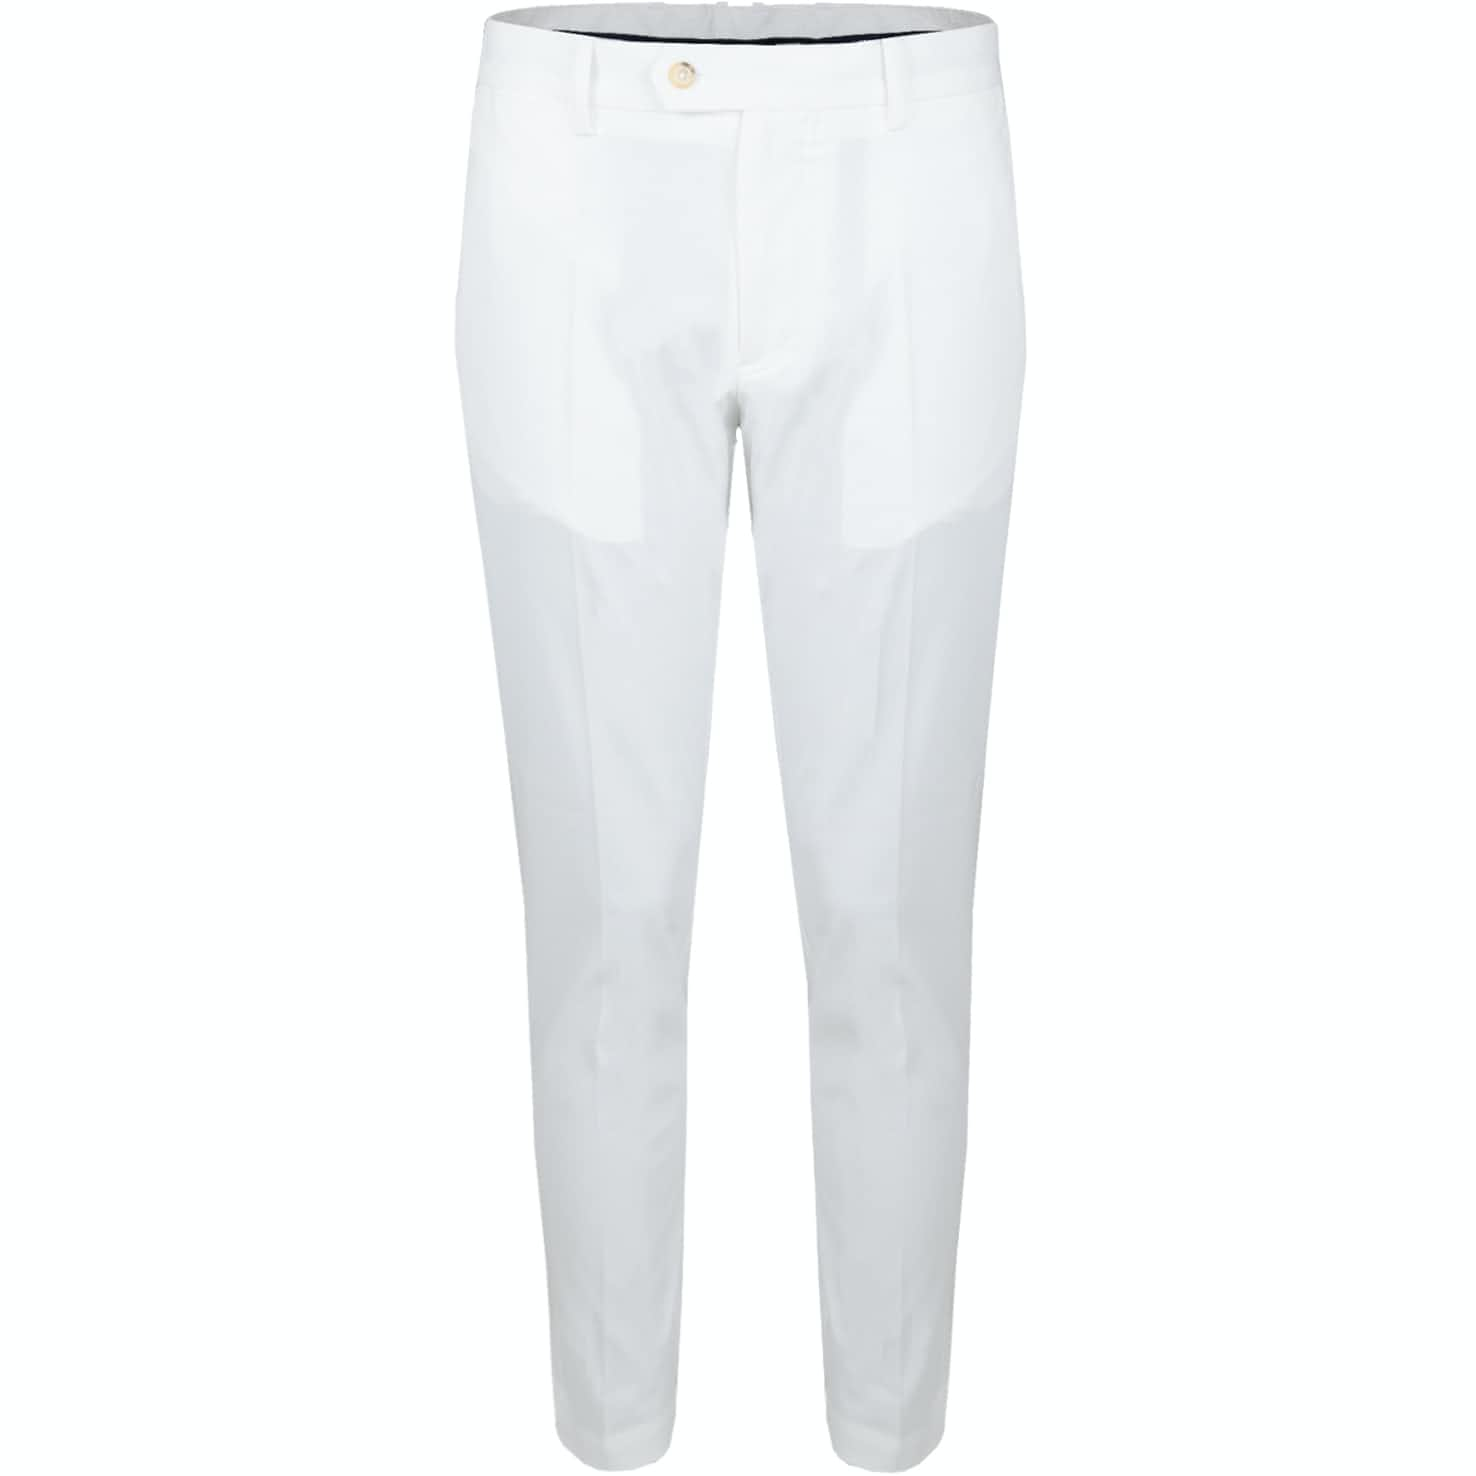 J.Lindeberg Vent Pants Tight Fit White - 2019